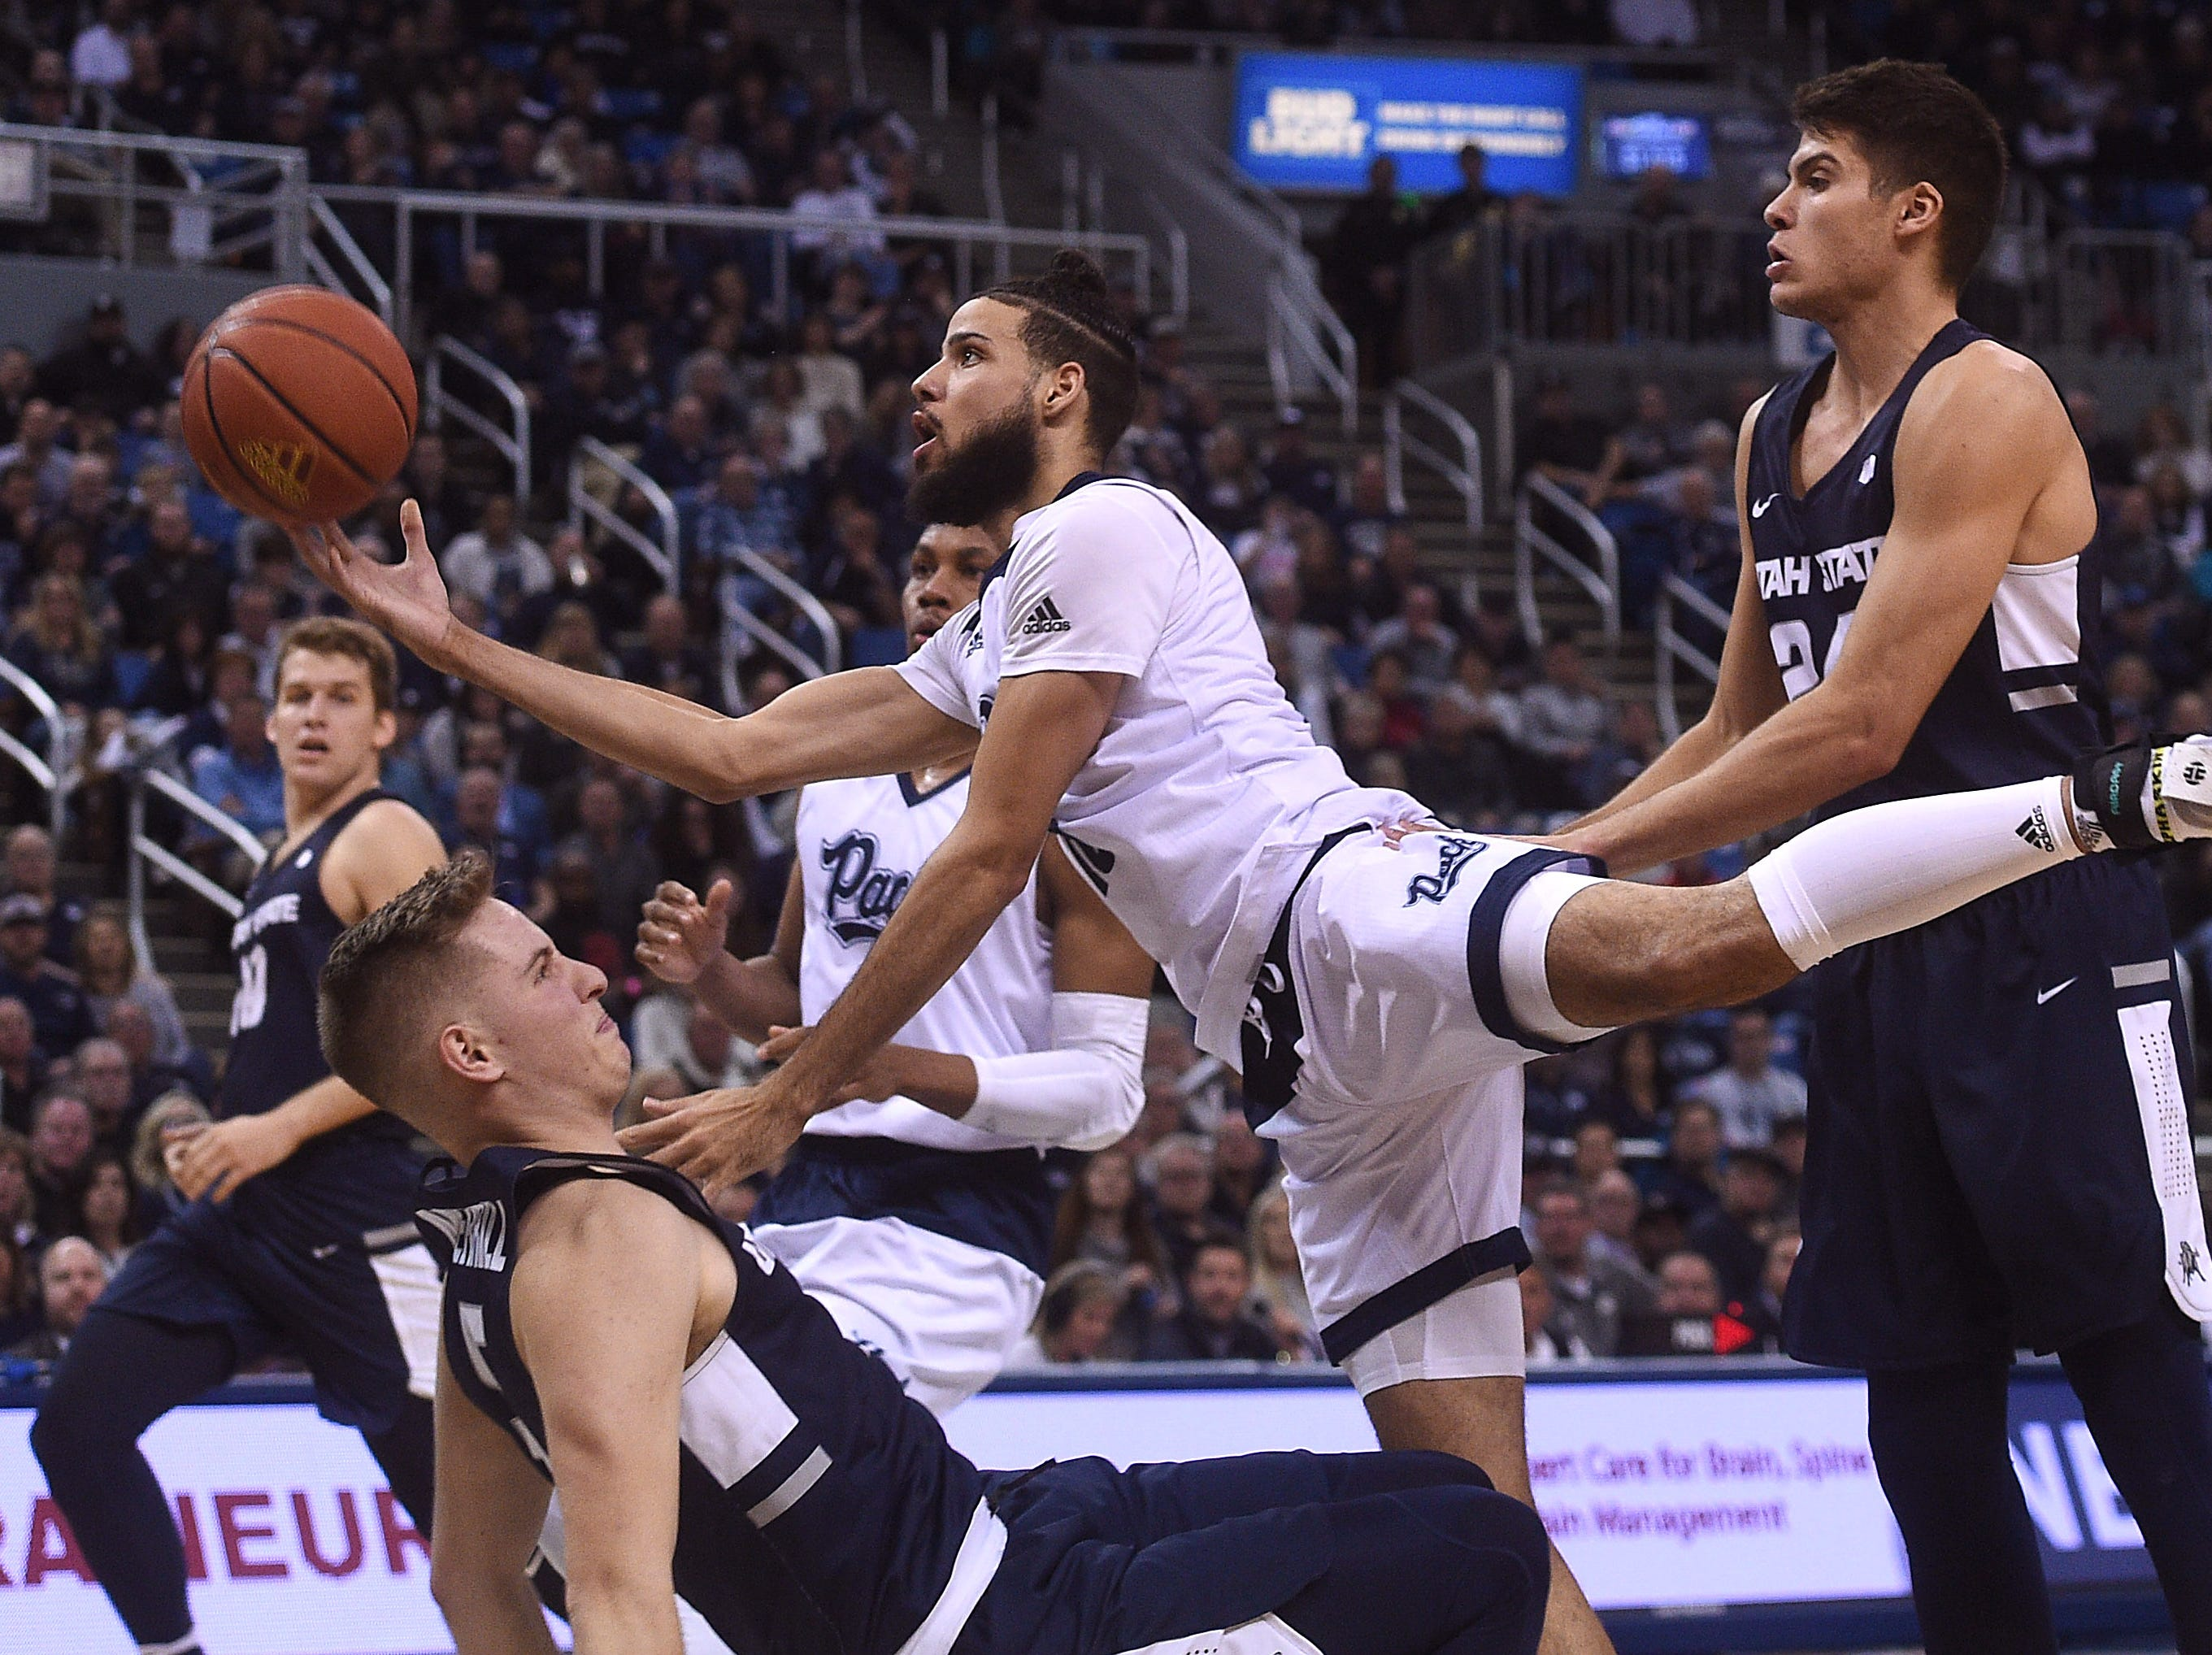 Nevada's Caleb Martin drives against Utah St. during their basketball game at Lawlor Events Center in Reno on Jan. 2, 2019.